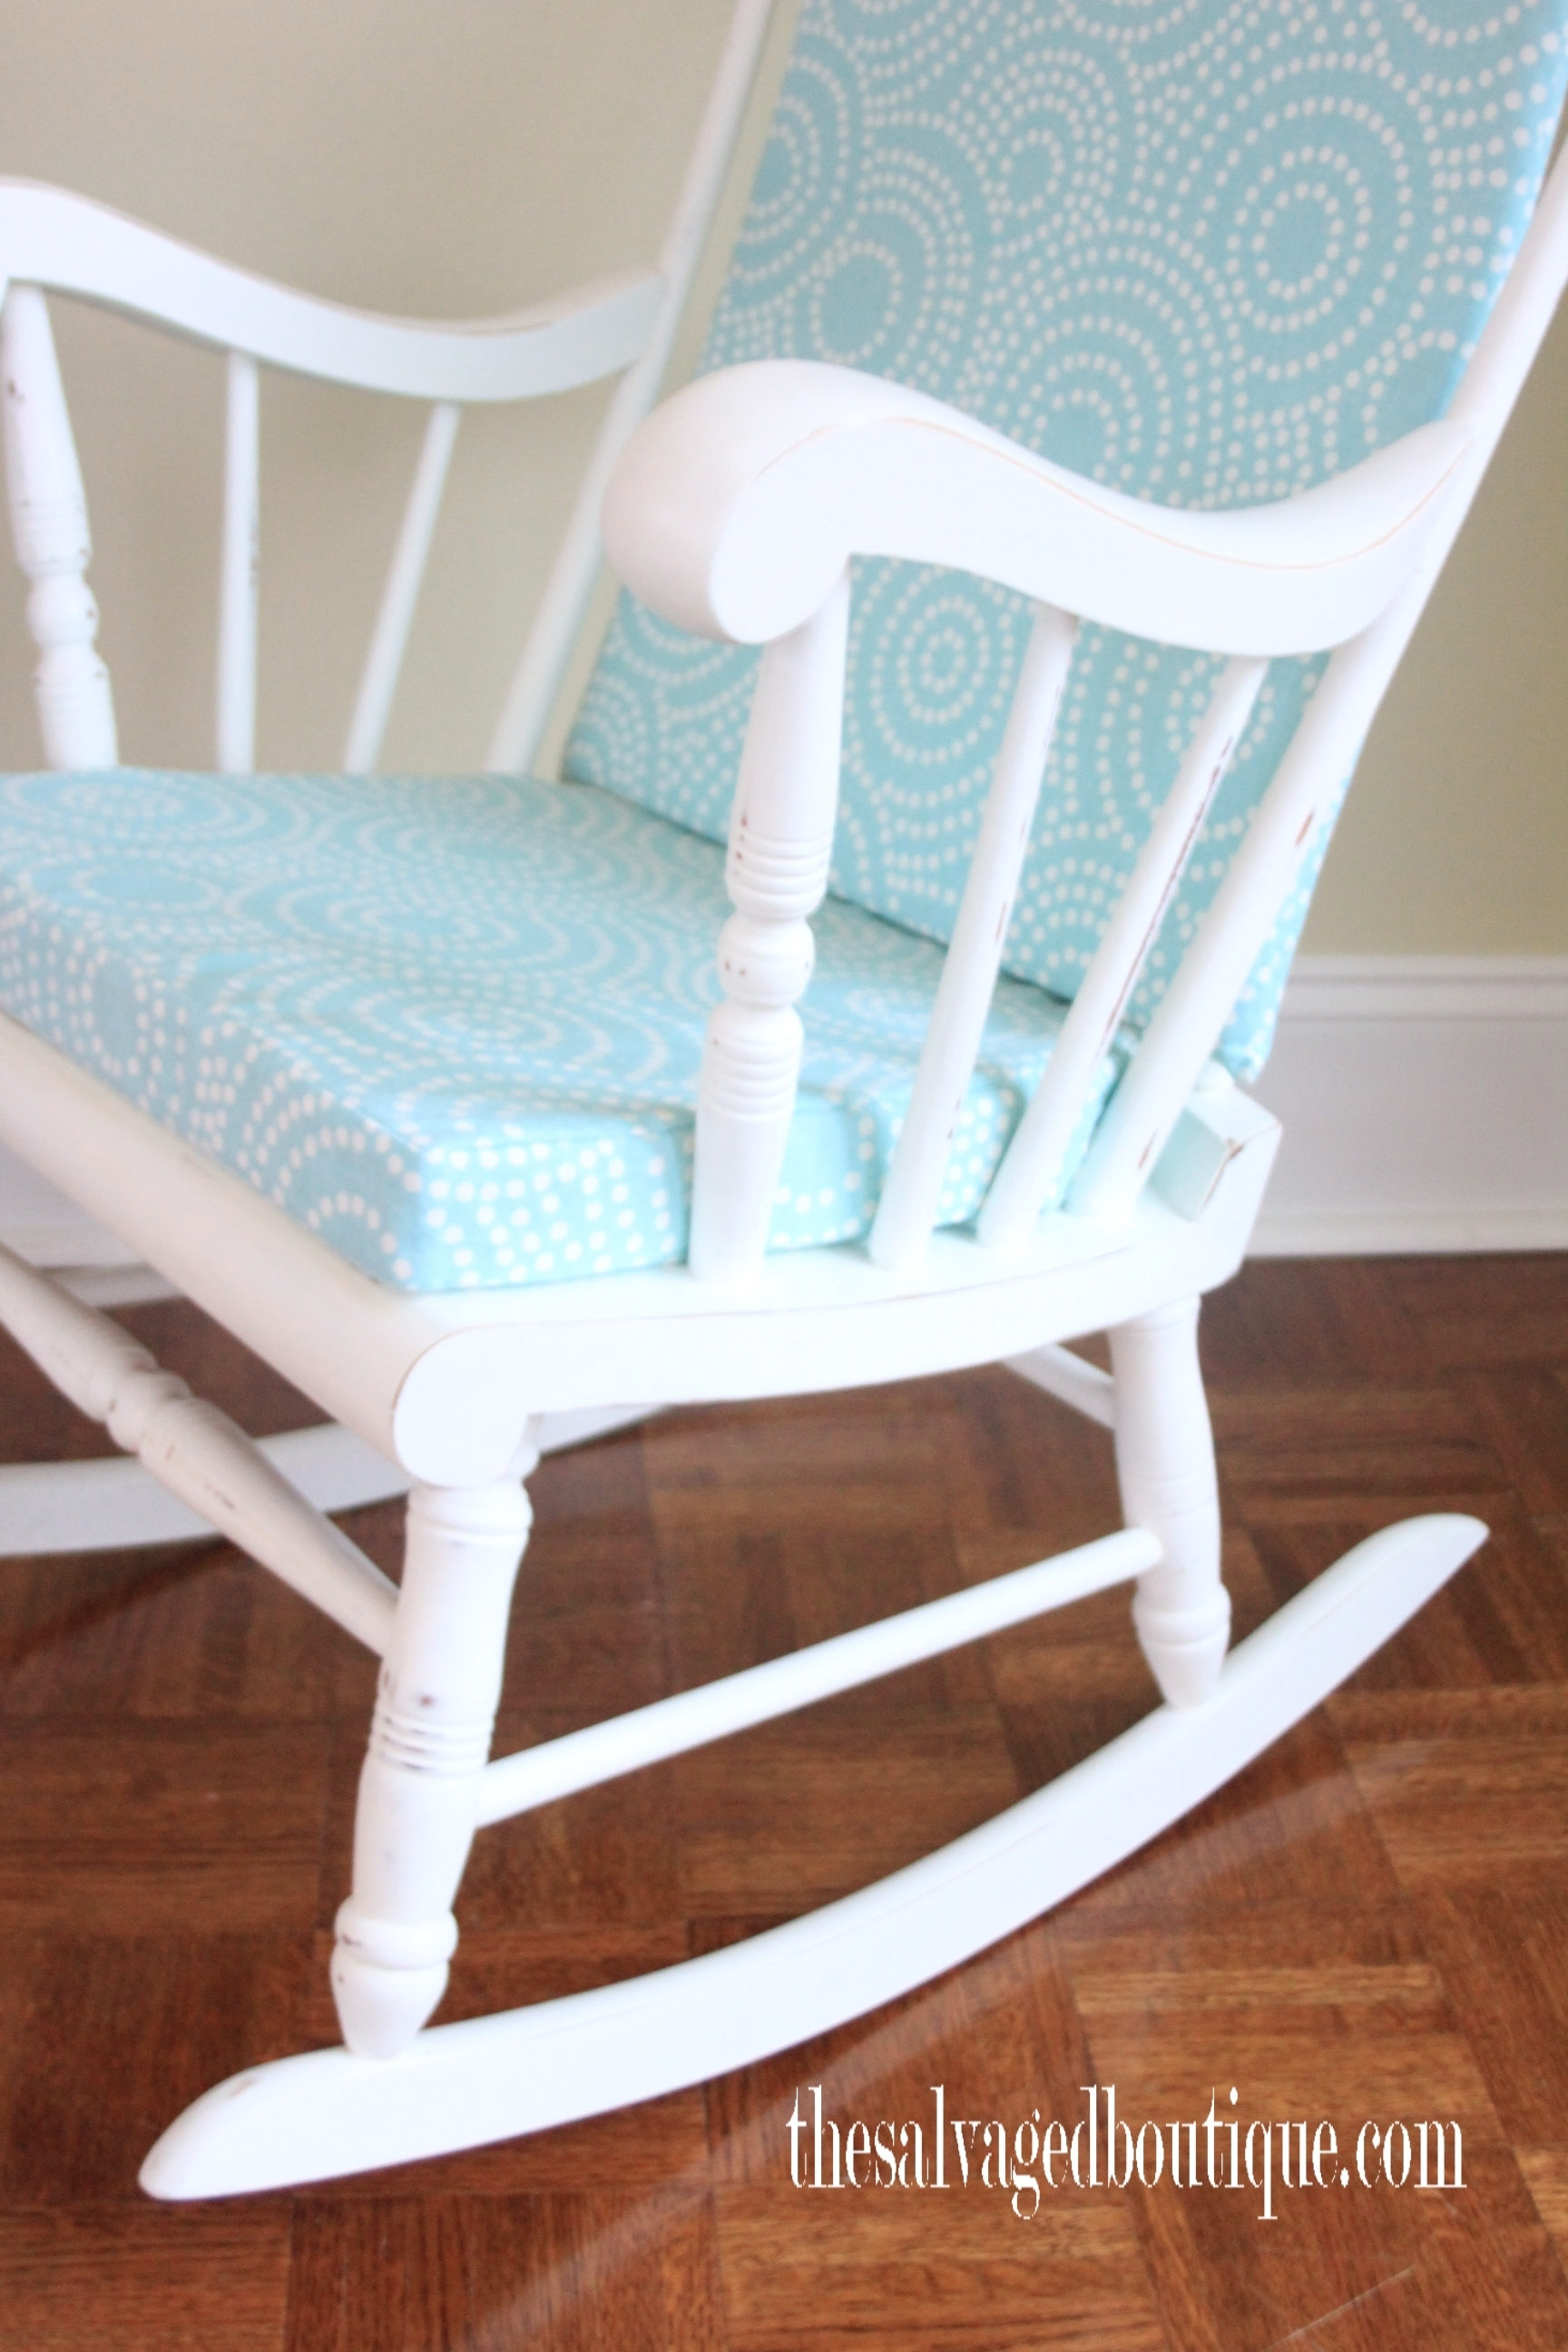 Grandpa's Rocking Chair Brightened Up For New Baby Nursery (View 3 of 15)